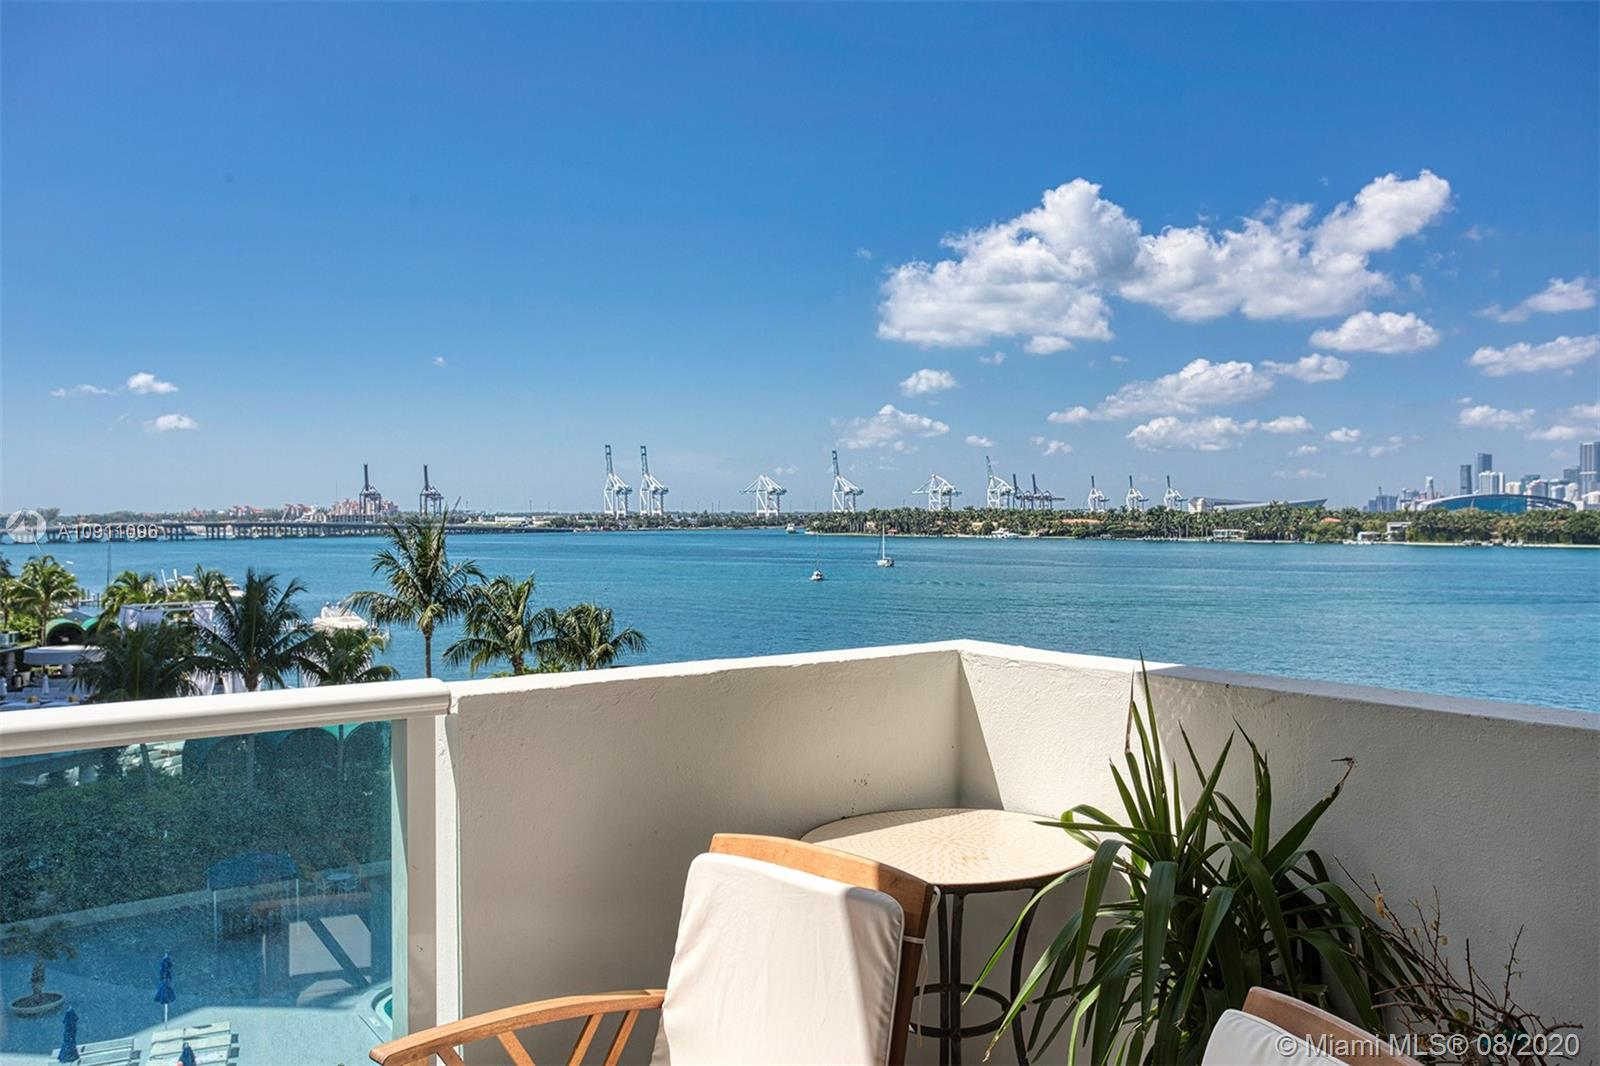 Mirador North #629 - 1200 West Ave #629, Miami Beach, FL 33139